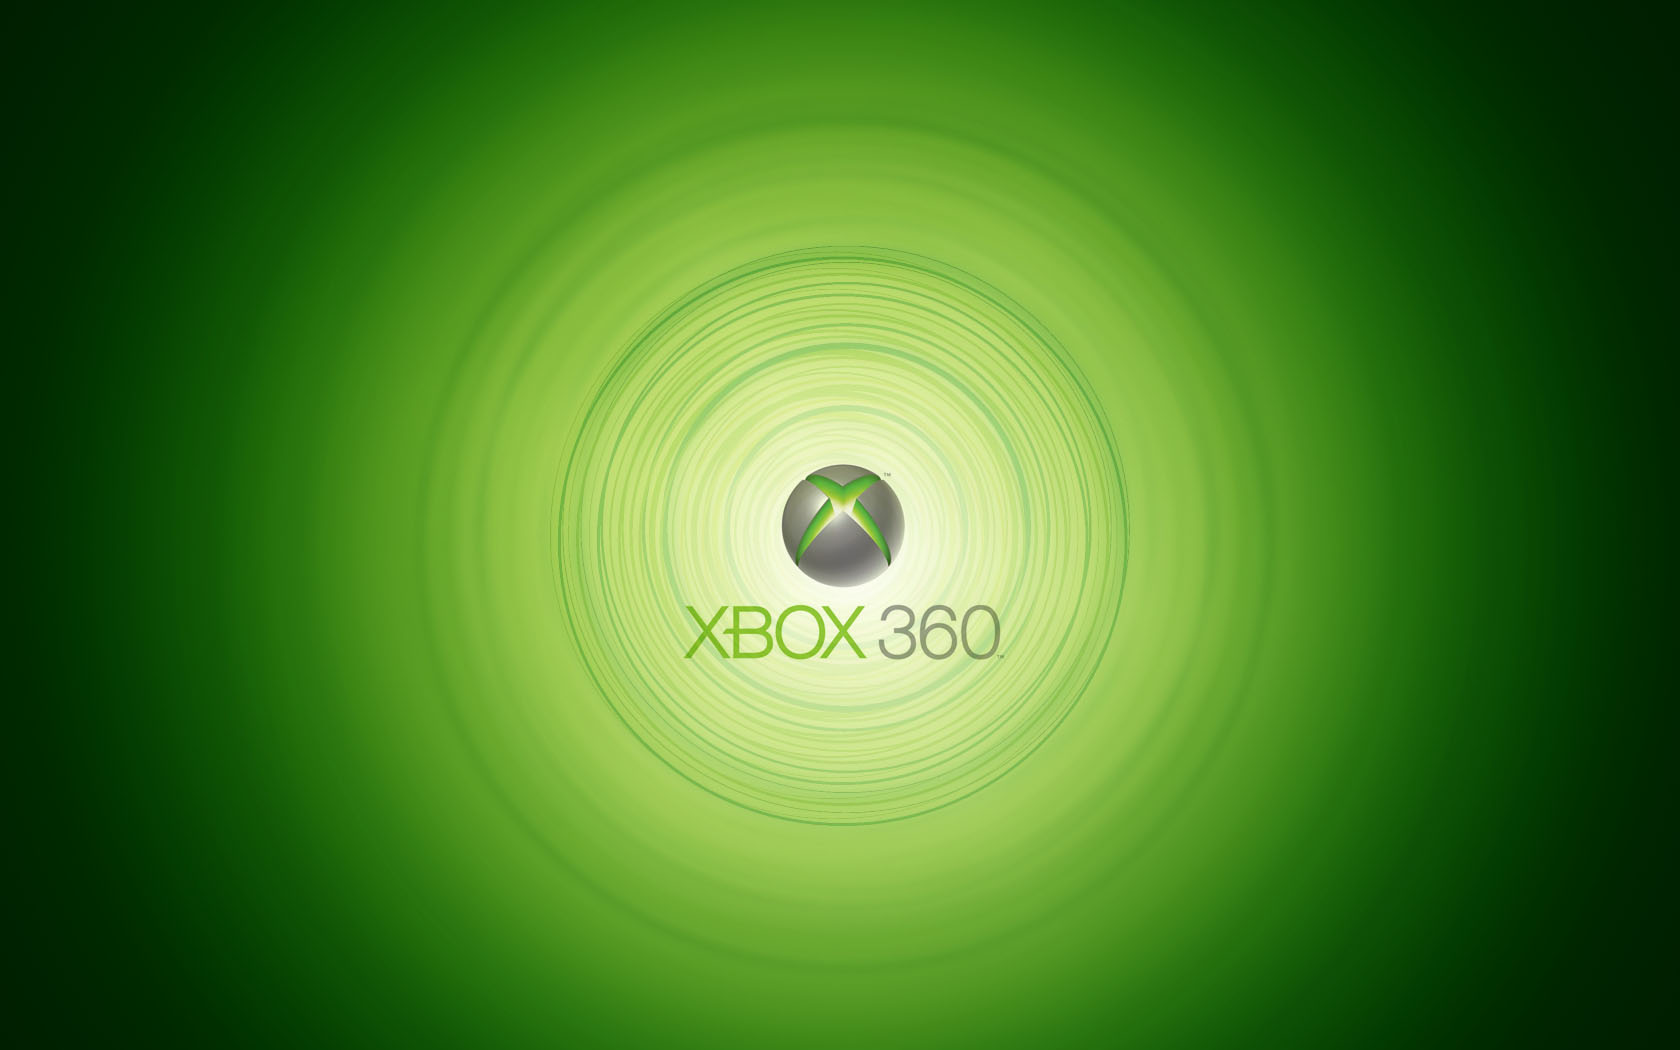 <b>Xbox 360 wallpaper</b> by vinh291 on DeviantArt